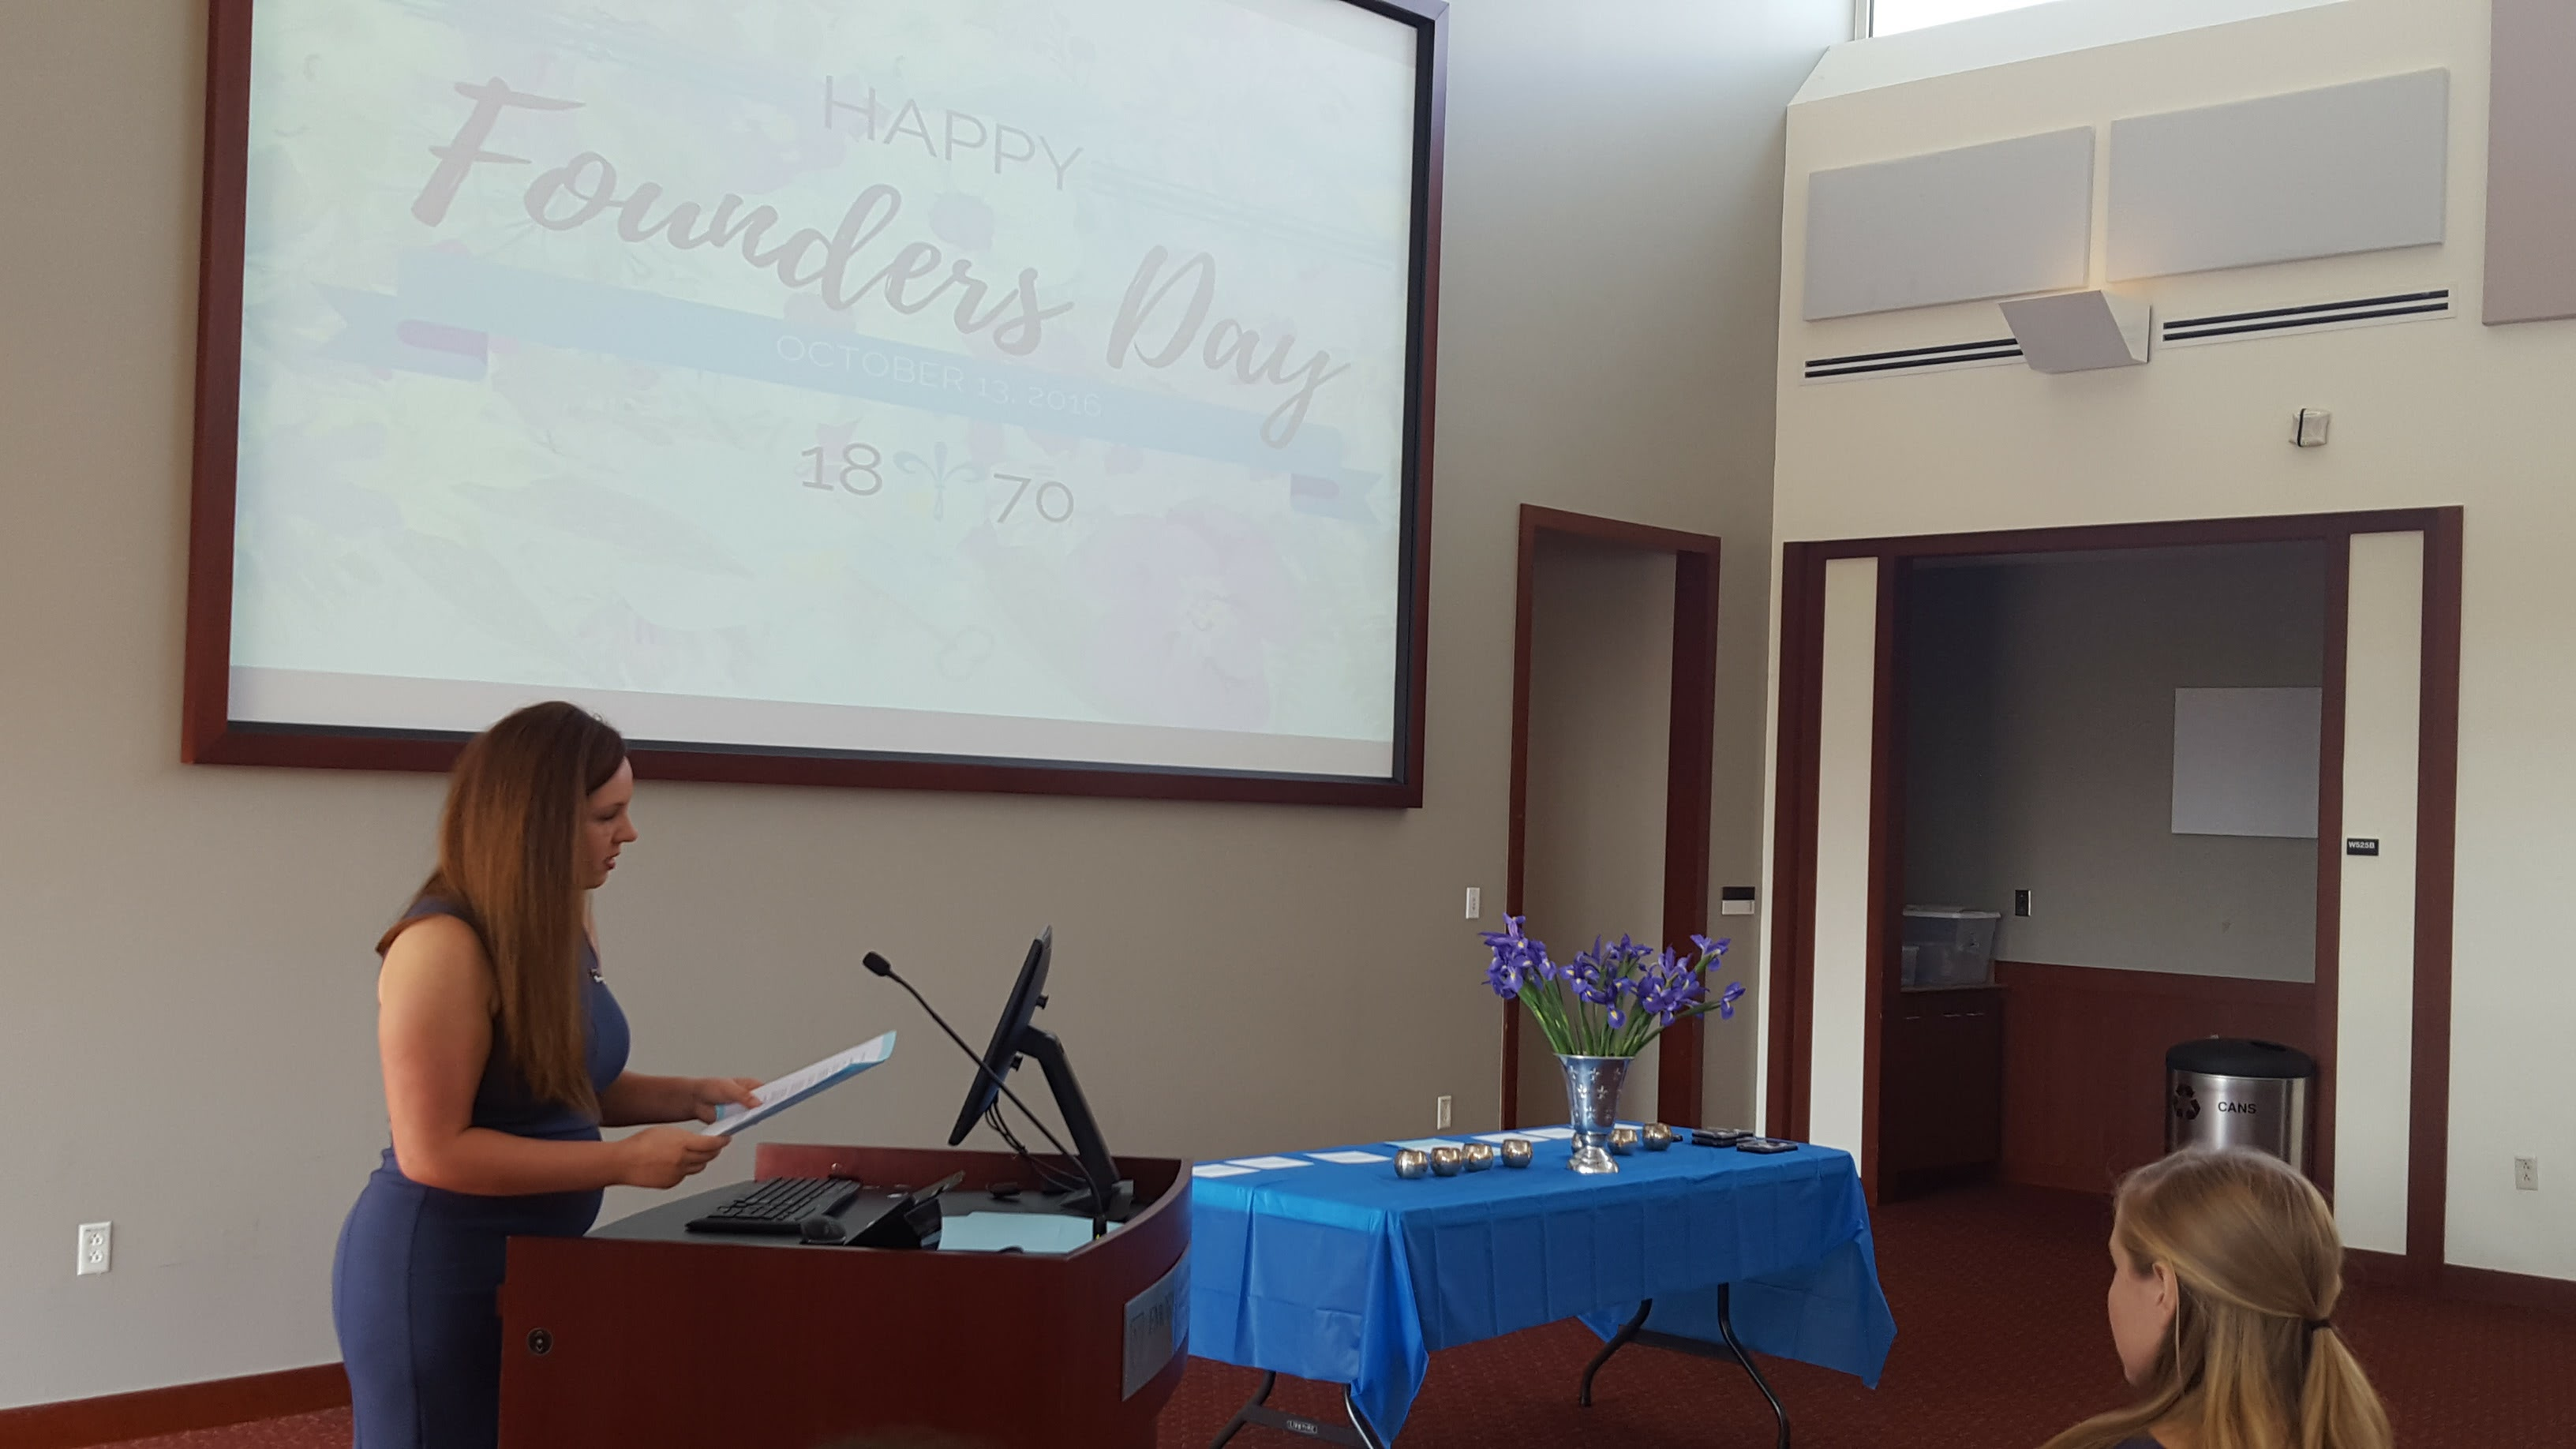 Founder's Day 2016